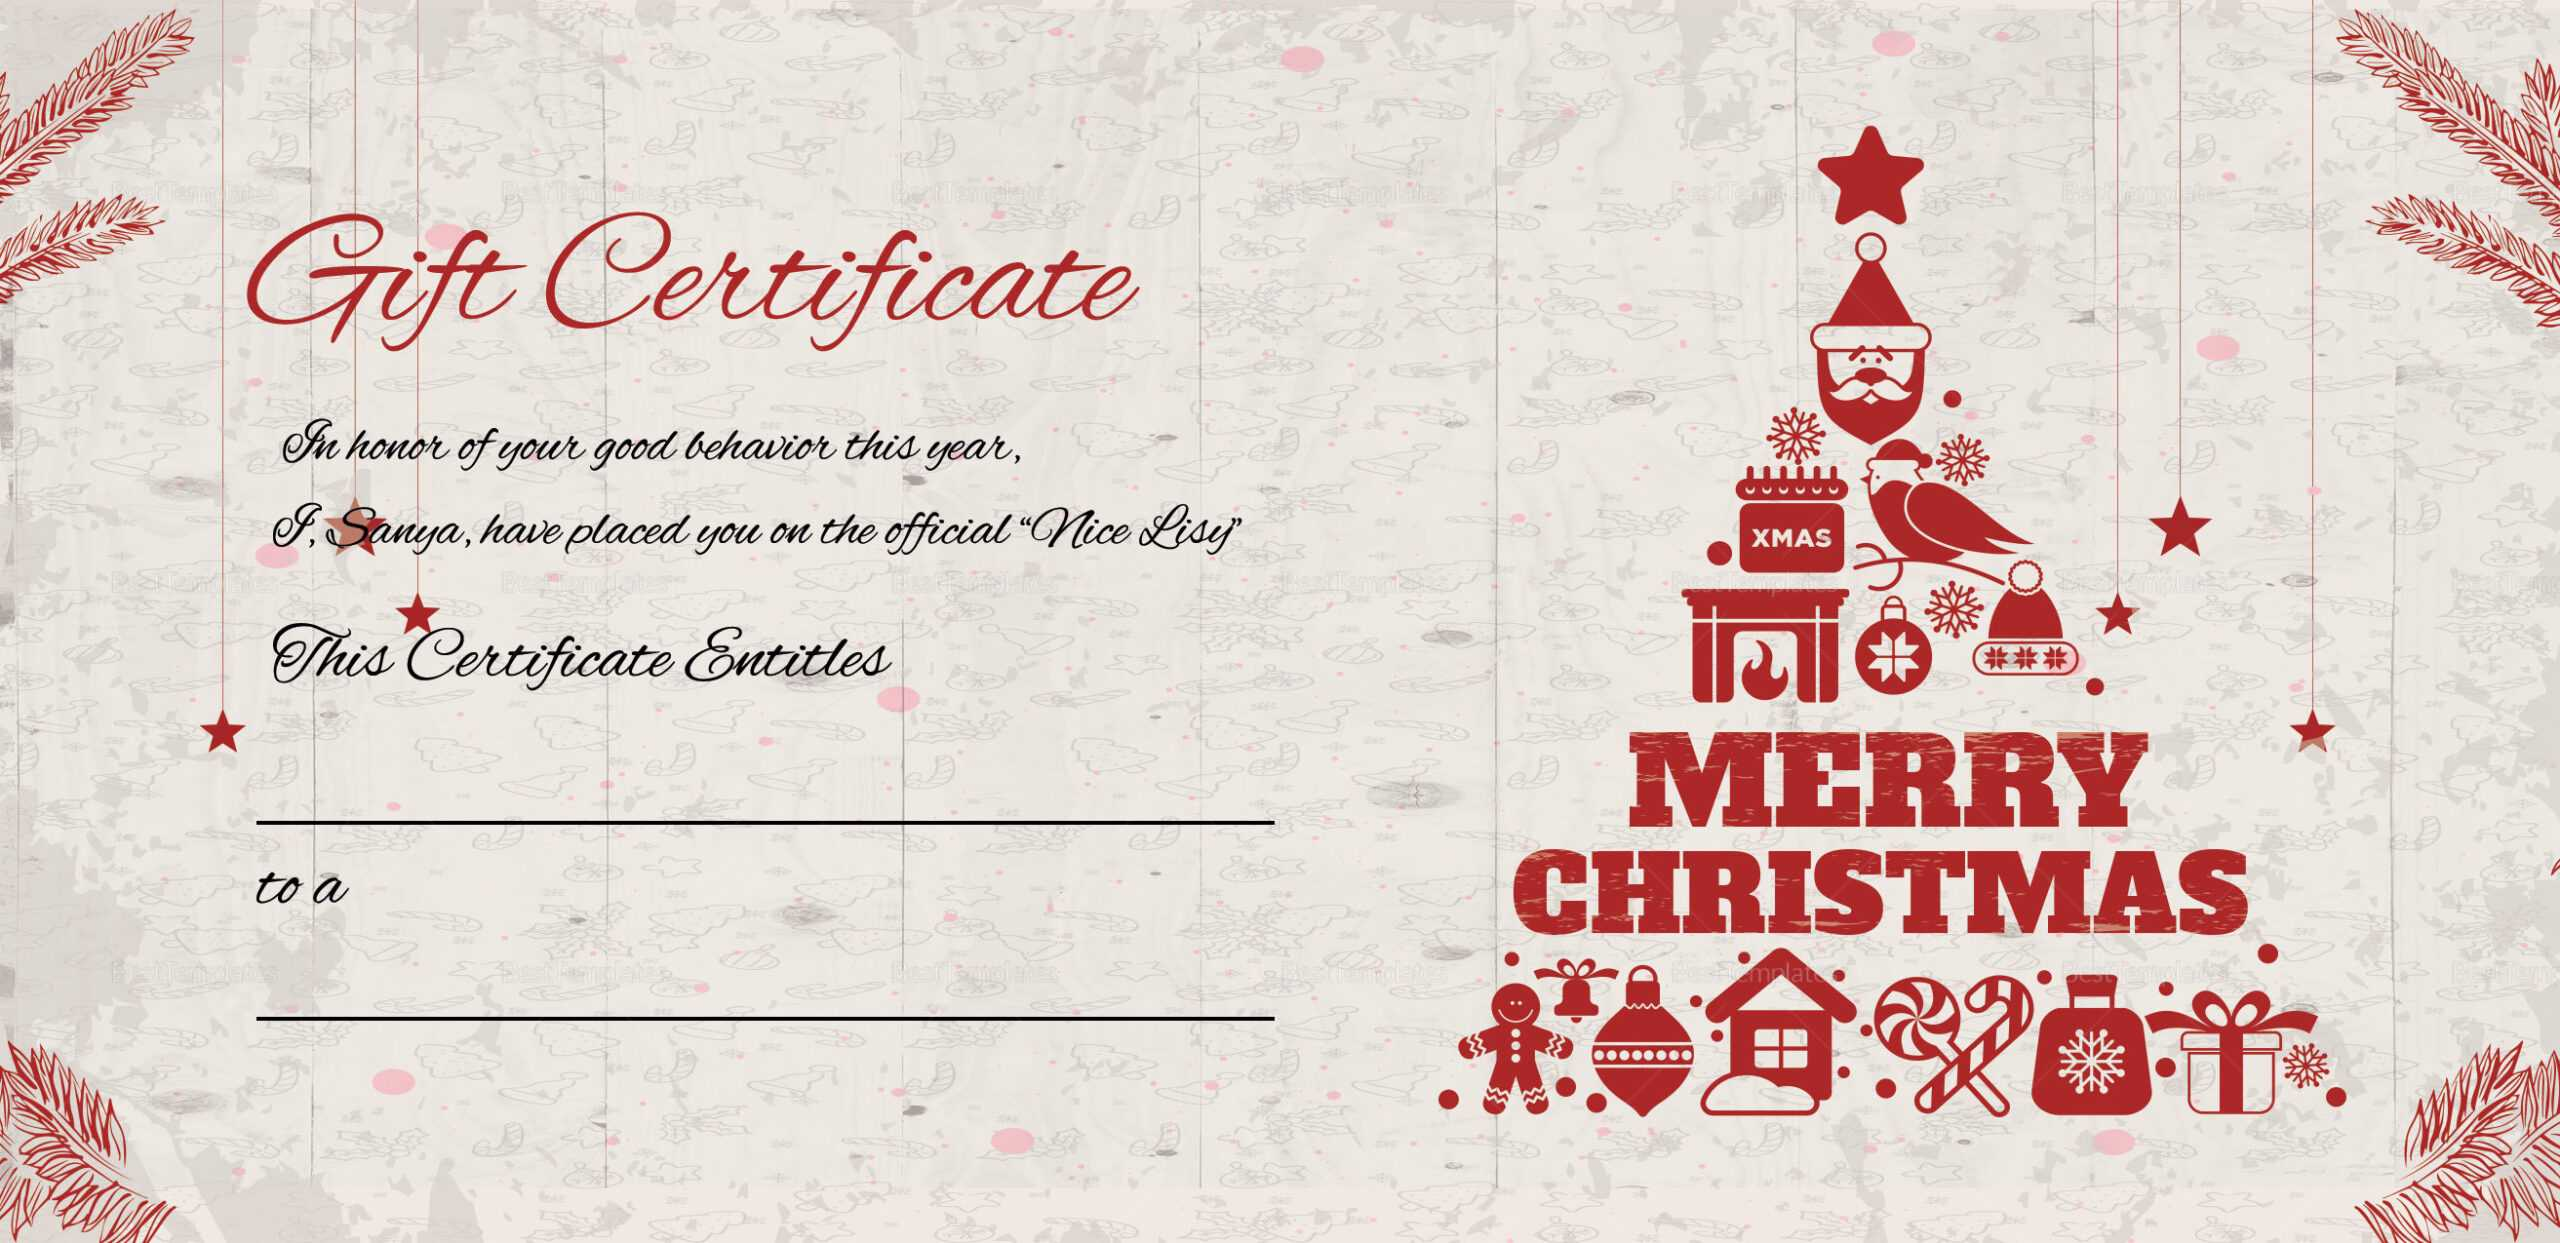 Merry Christmas Gift Certificate With Regard To Merry Christmas Gift Certificate Templates